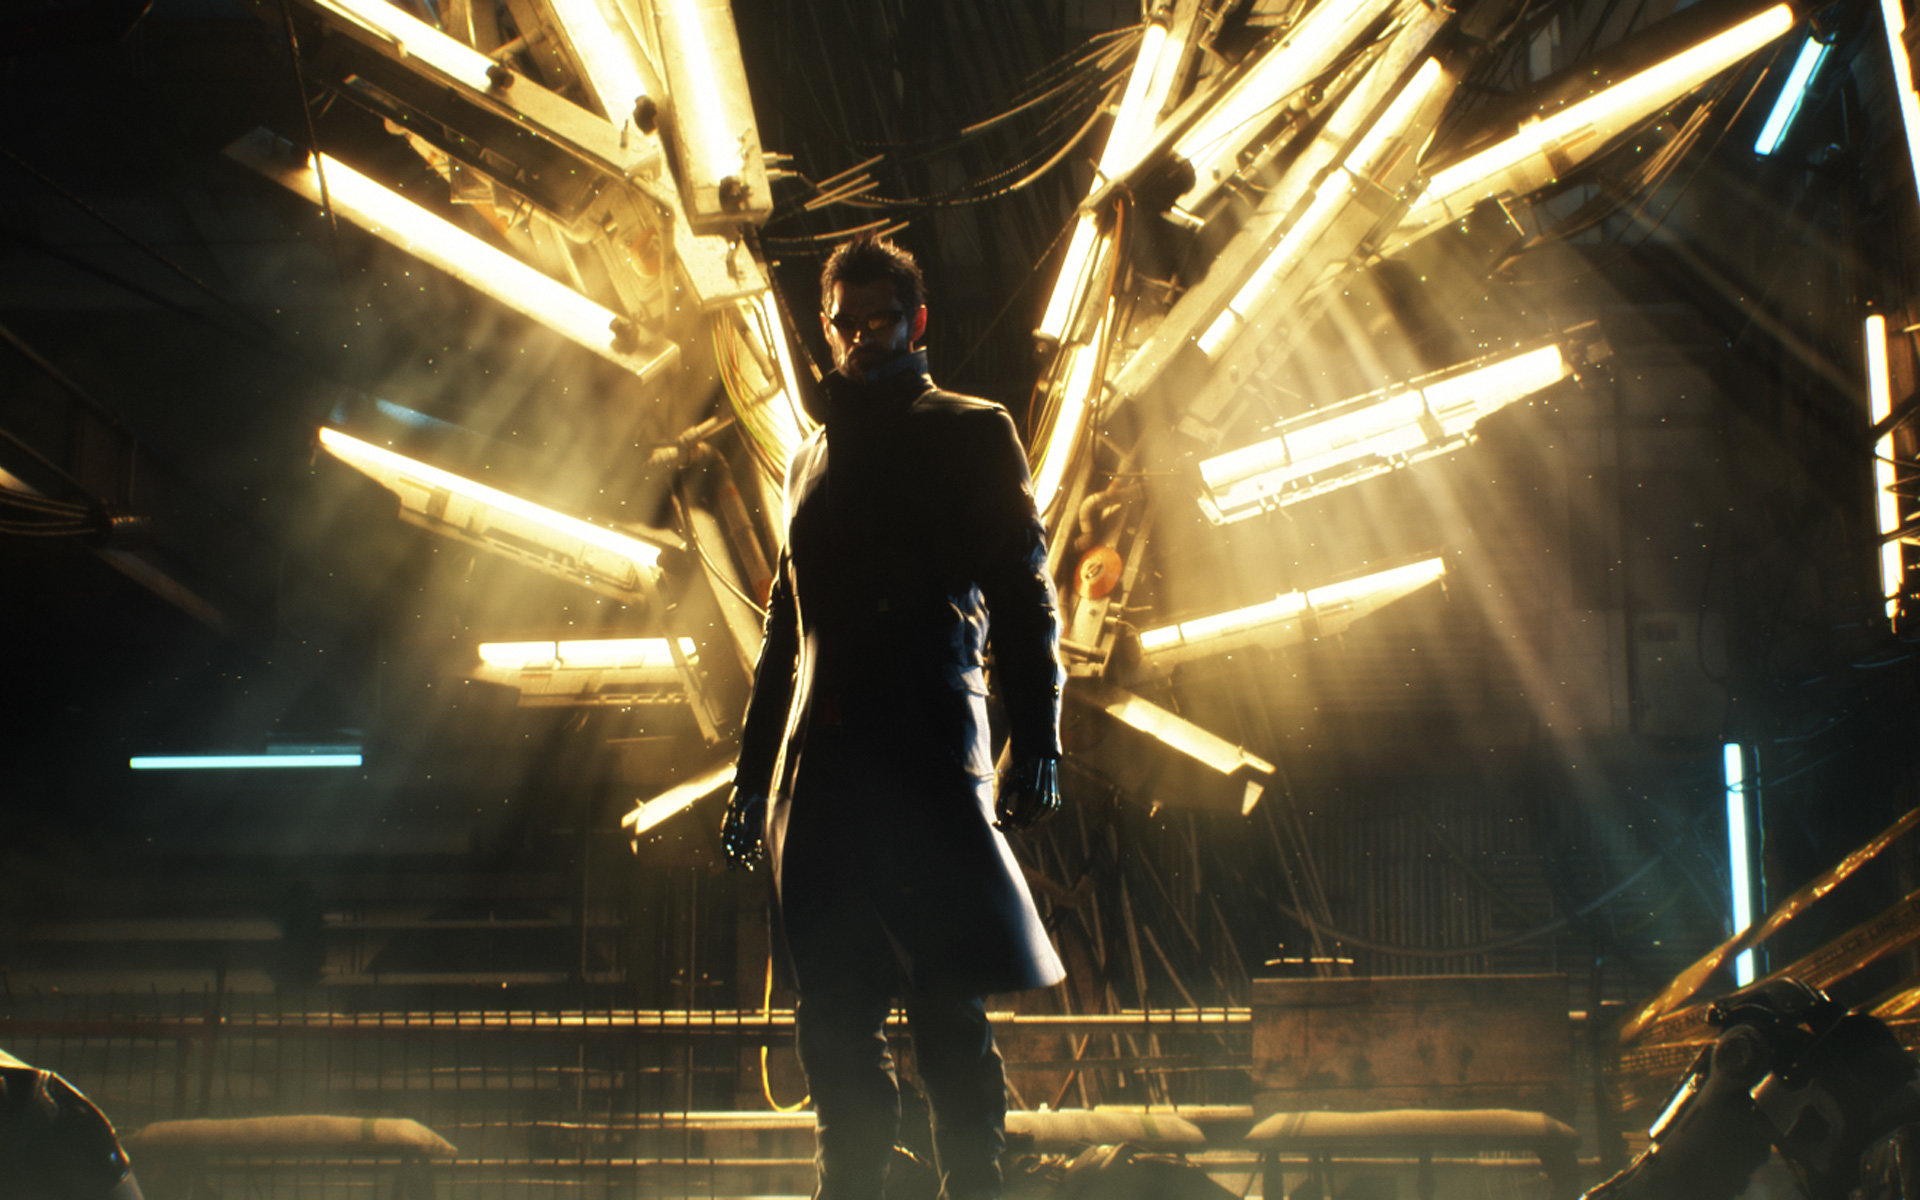 Download hd 1920x1200 Deus Ex: Mankind Divided PC background ID:144335 for free